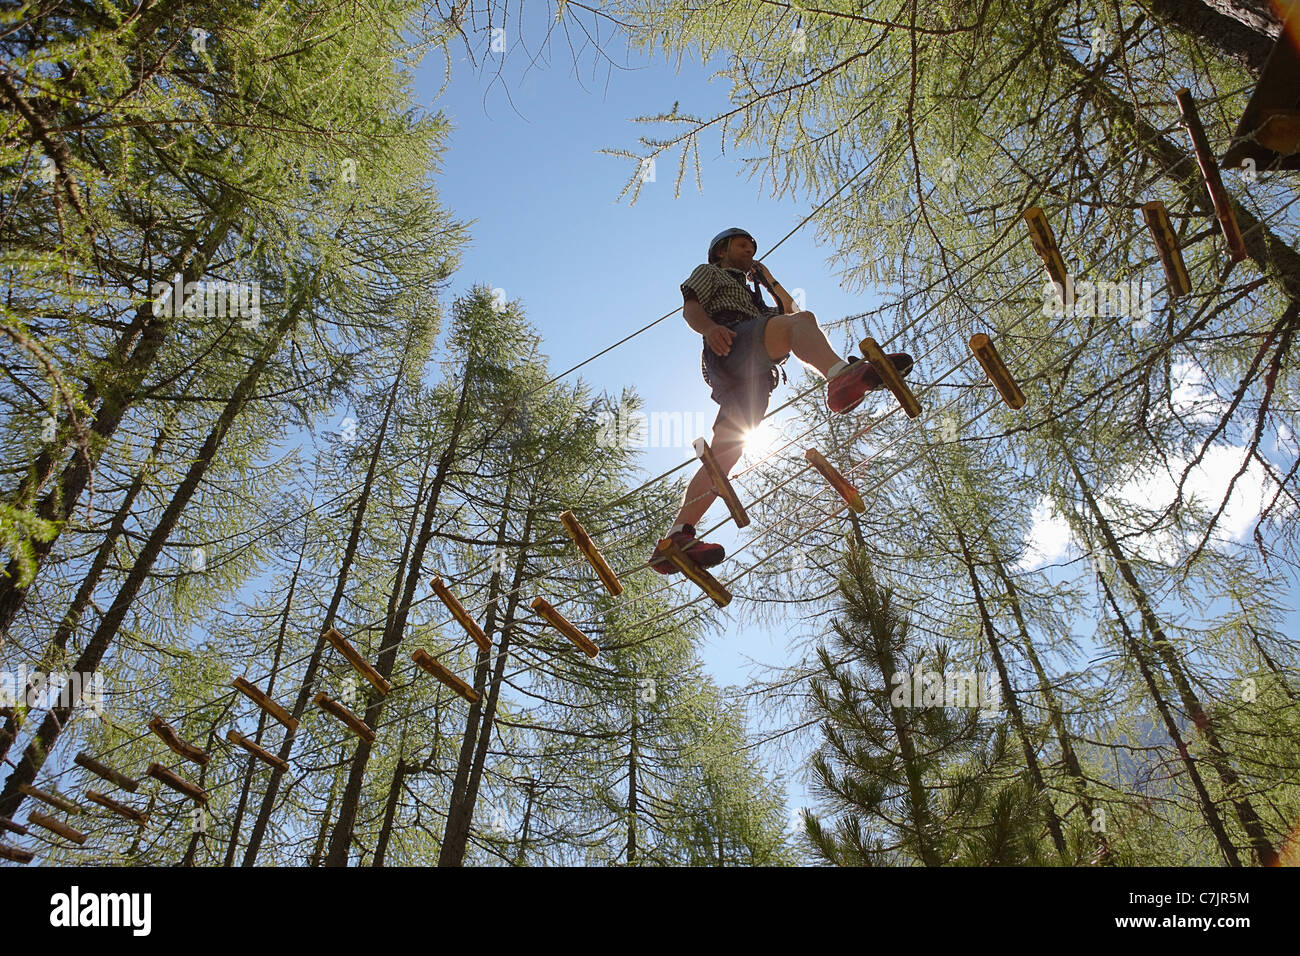 Person doing treetop obstacle course - Stock Image